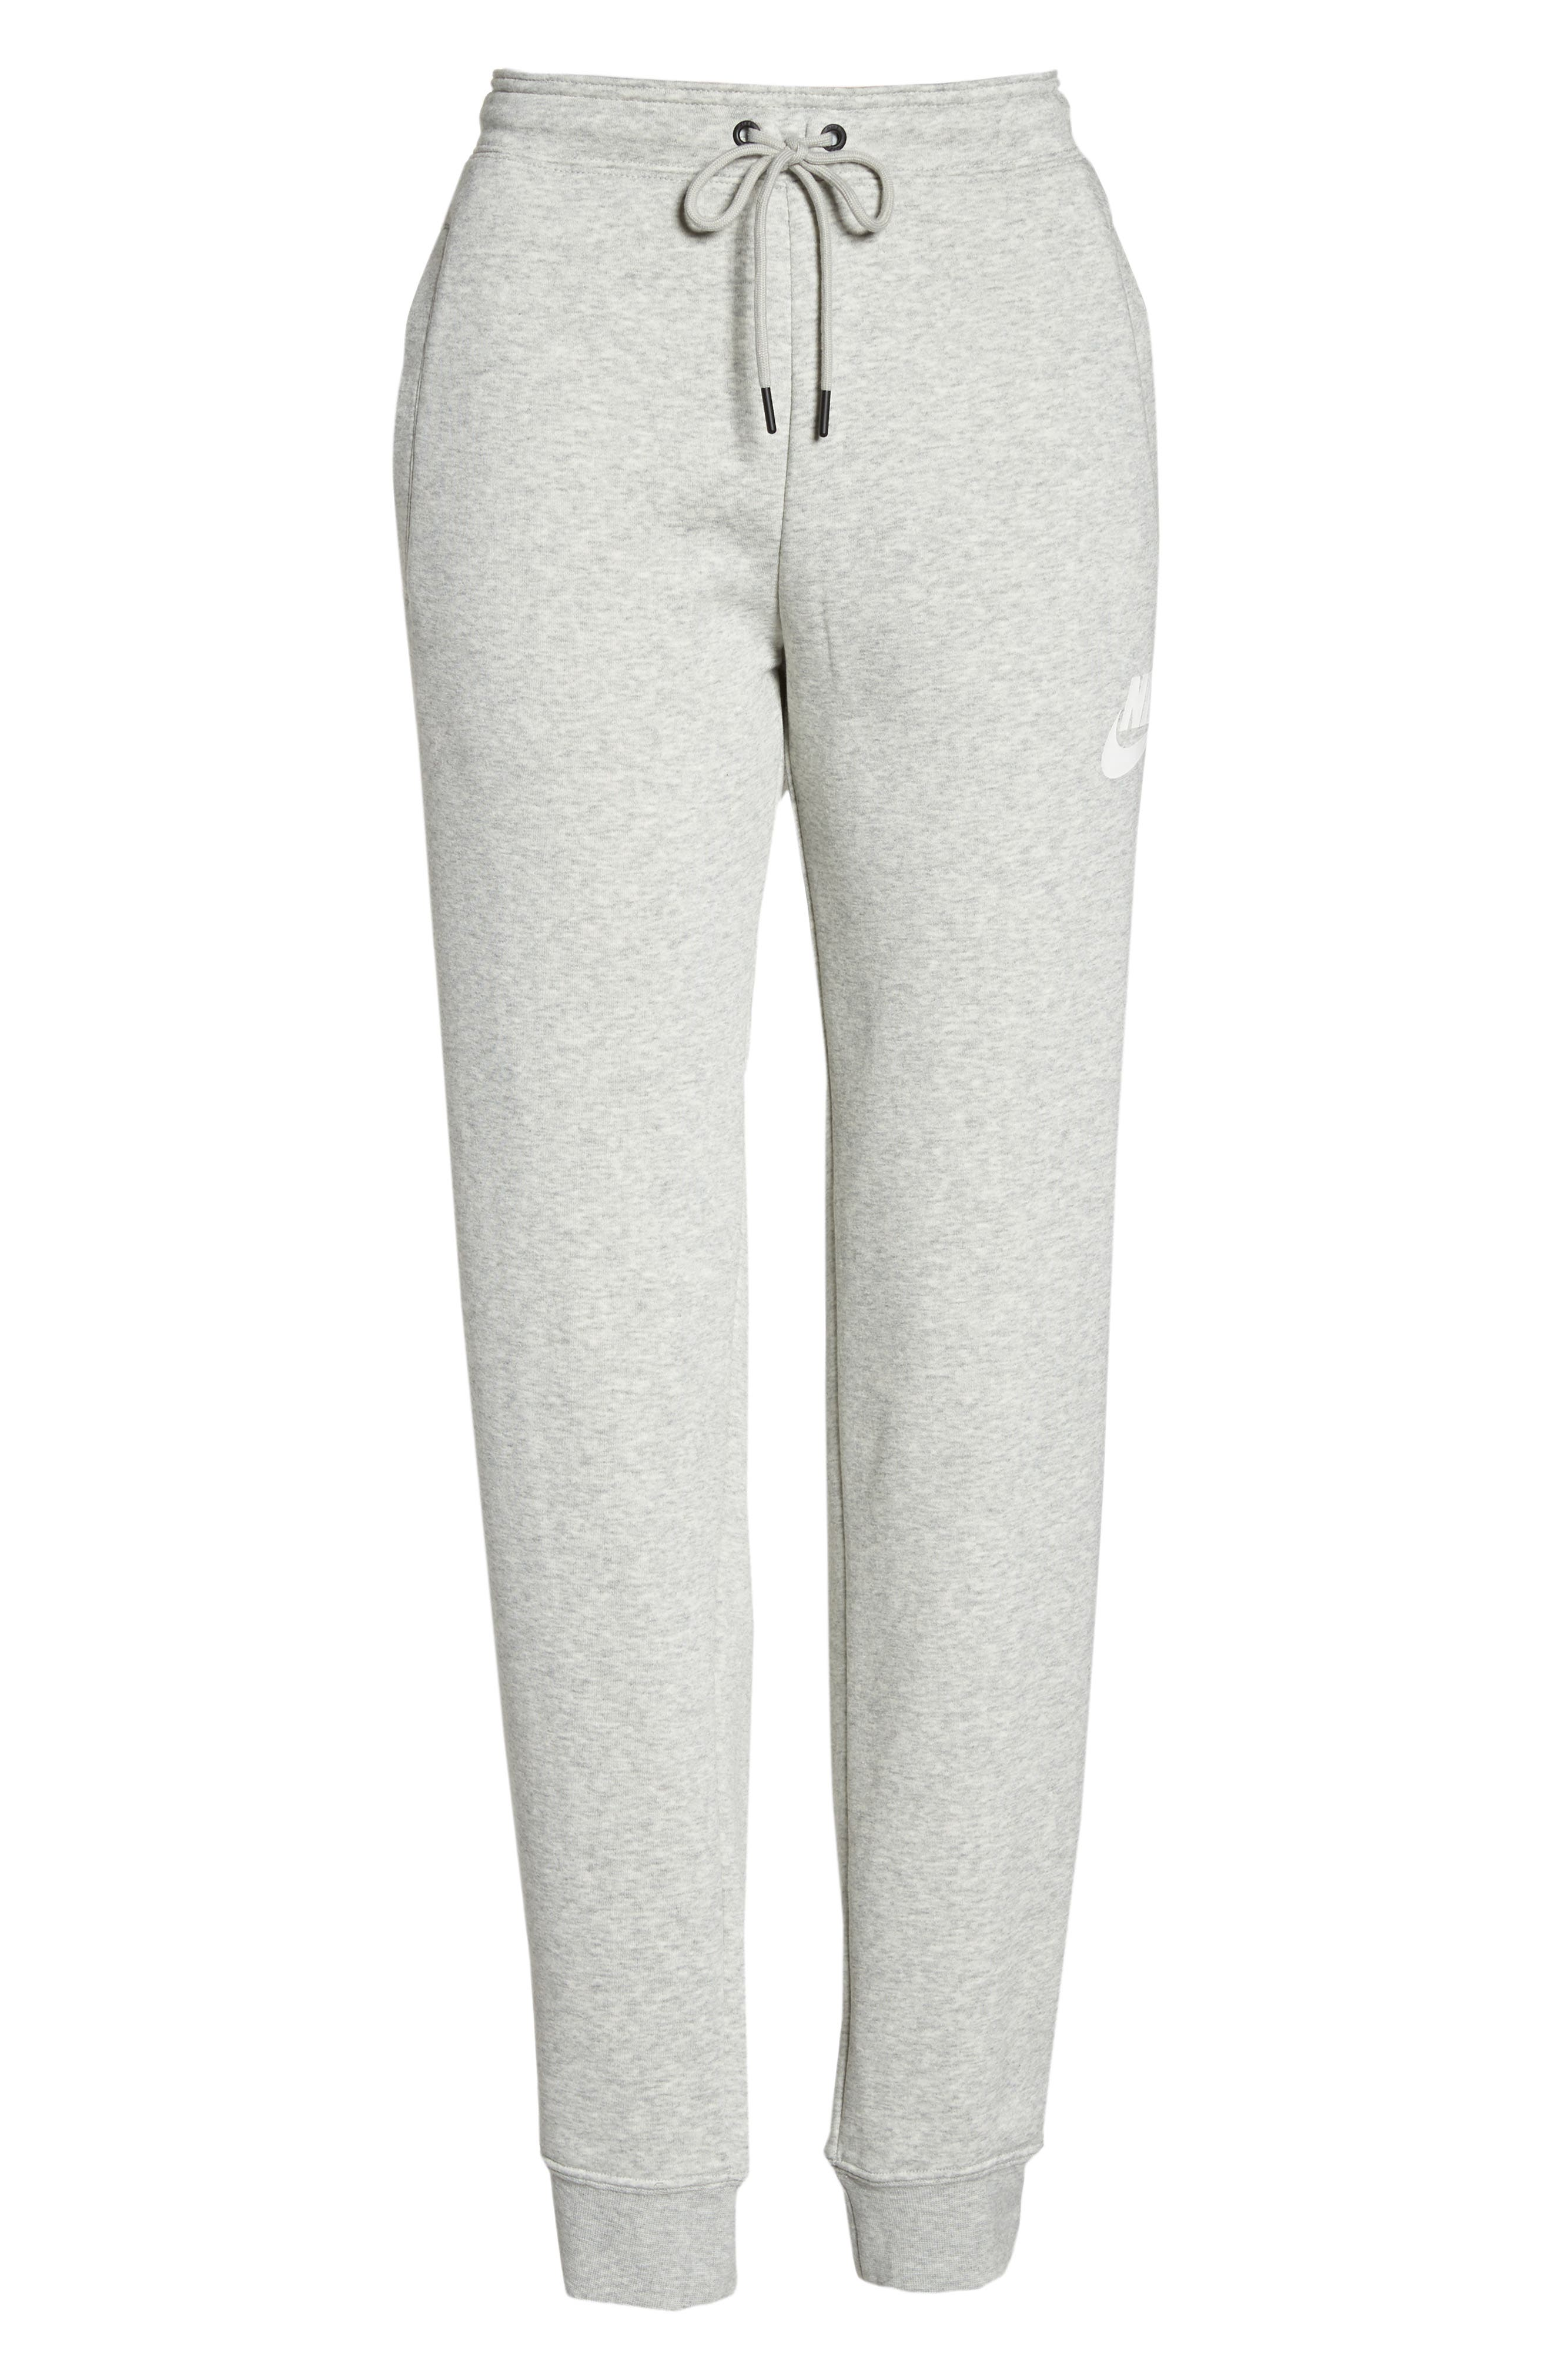 NIKE, Sportswear Rally Jogger Pants, Alternate thumbnail 7, color, GREY HEATHER/ PALE GREY/ WHITE